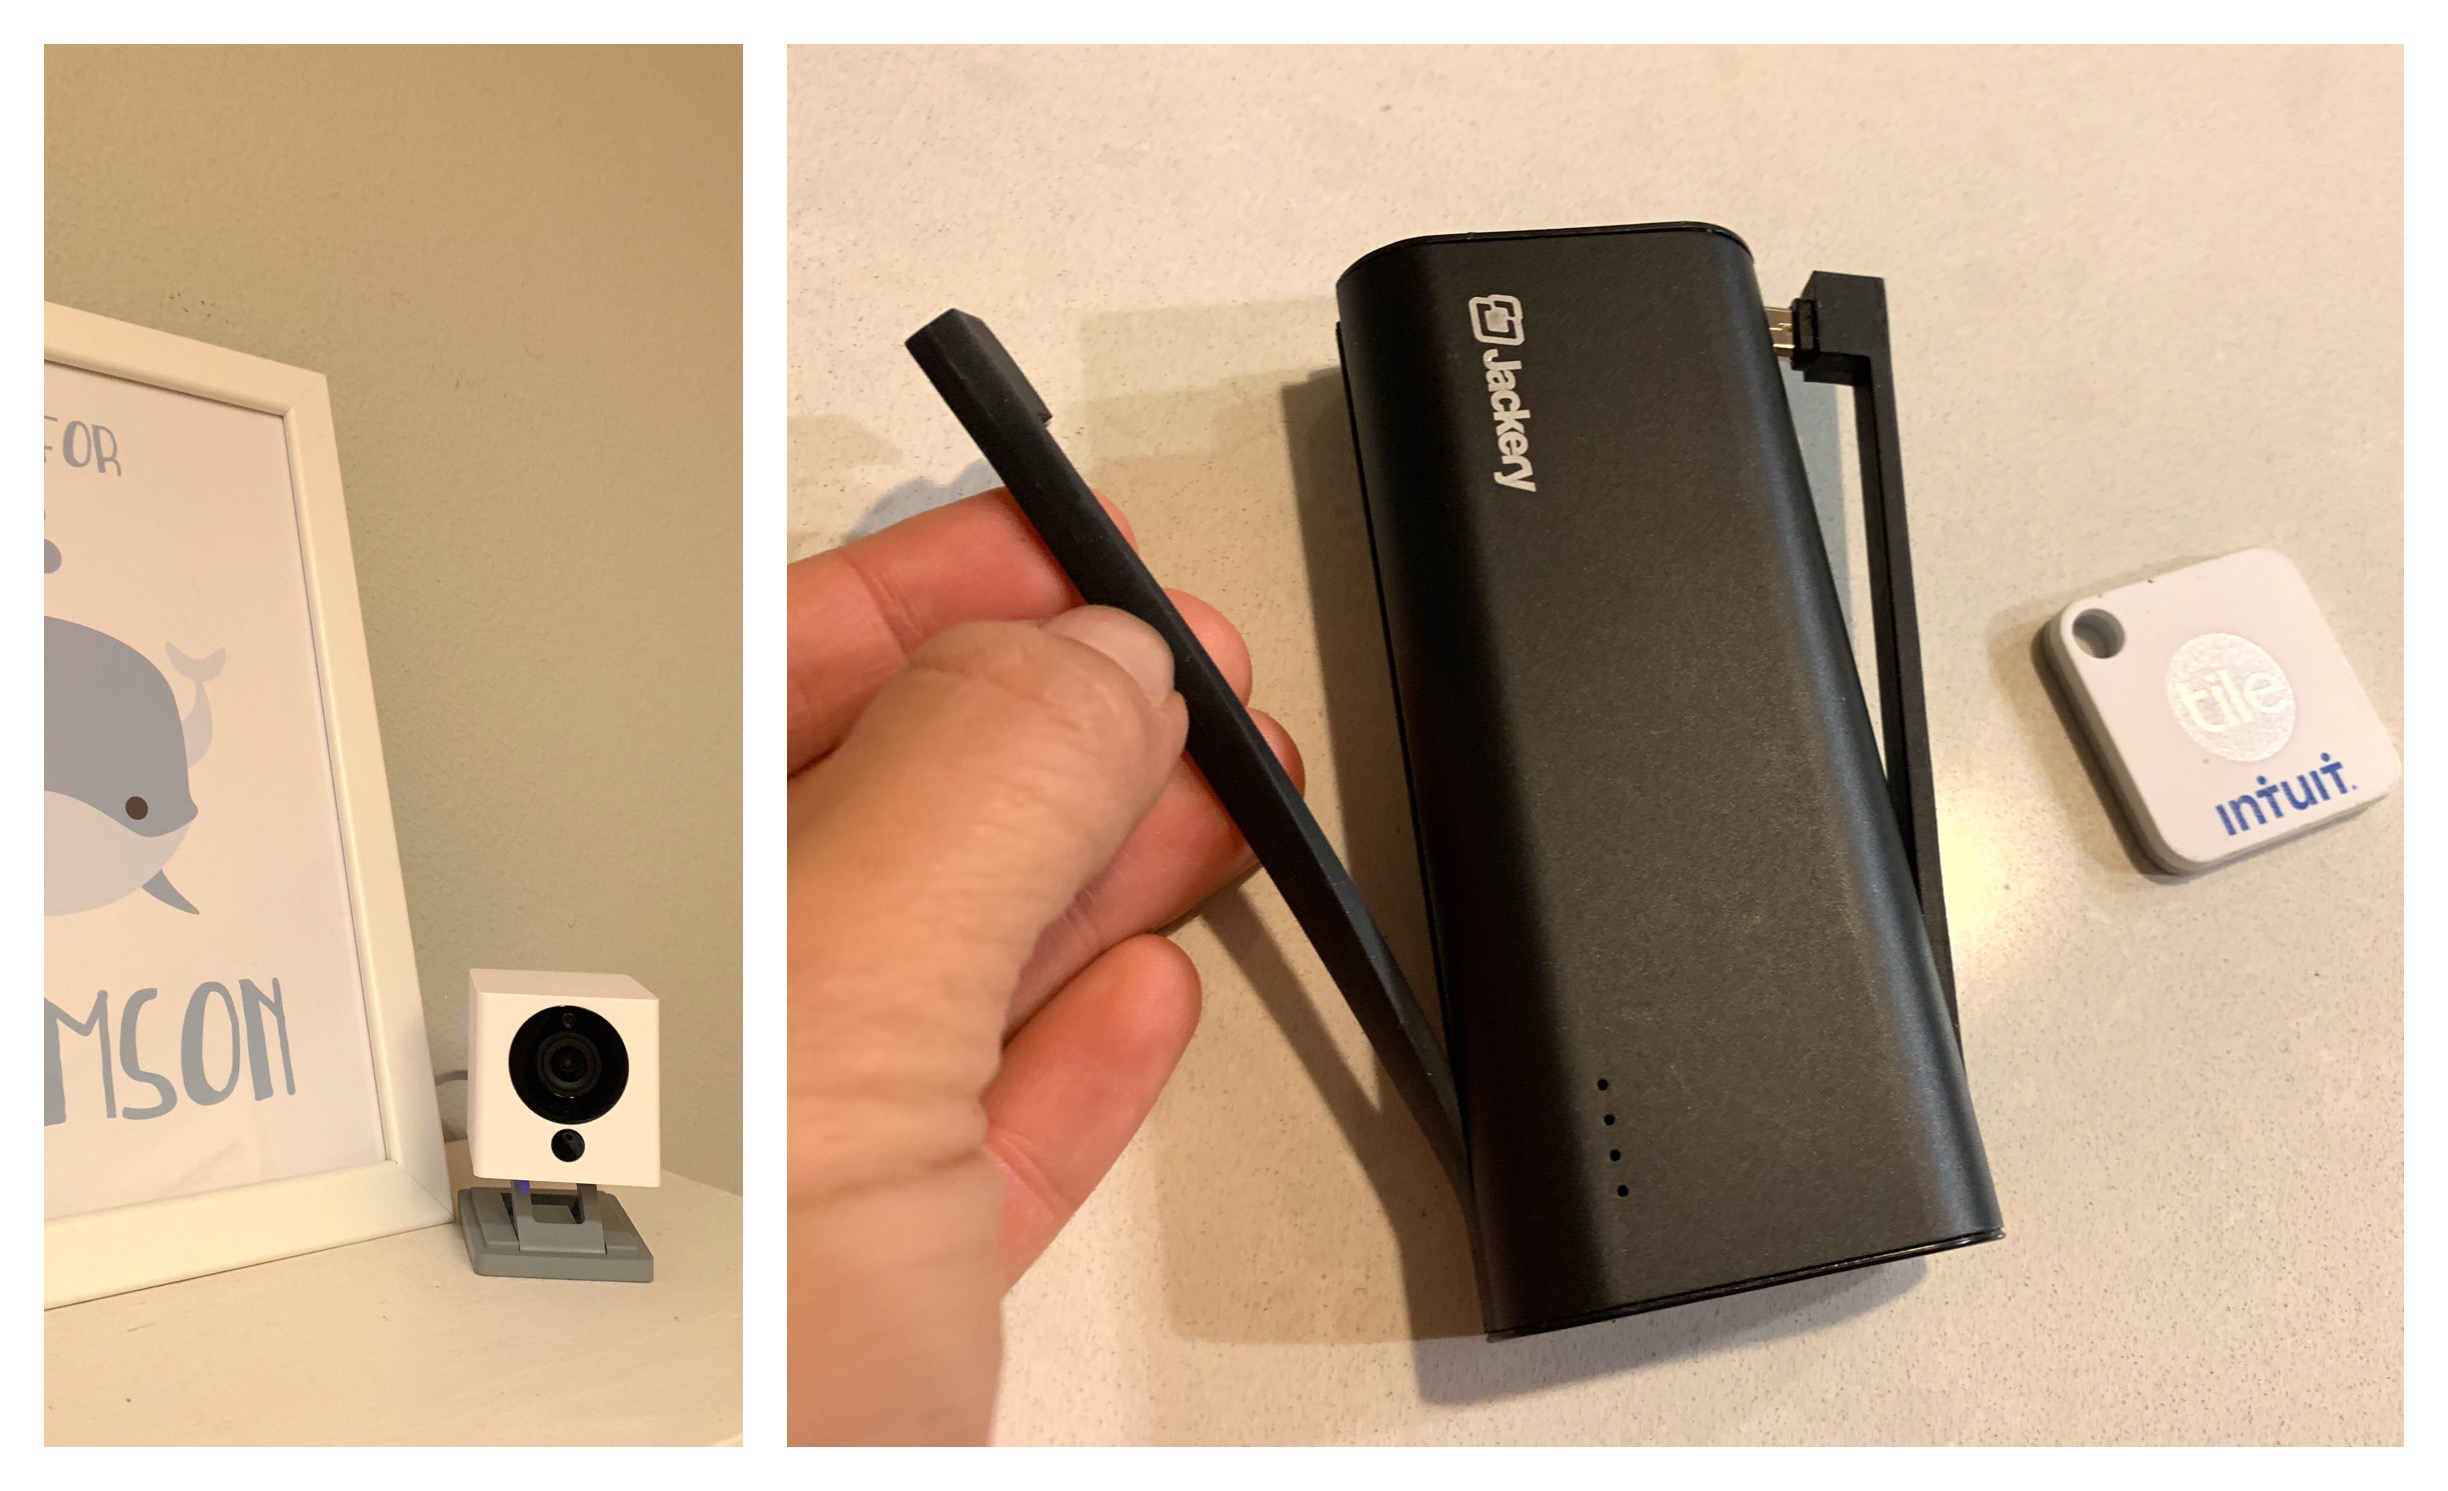 Left to Right: Wyzecam ($20), Jackery Bolt Power Bank ($40) and Tile Mate ($20)